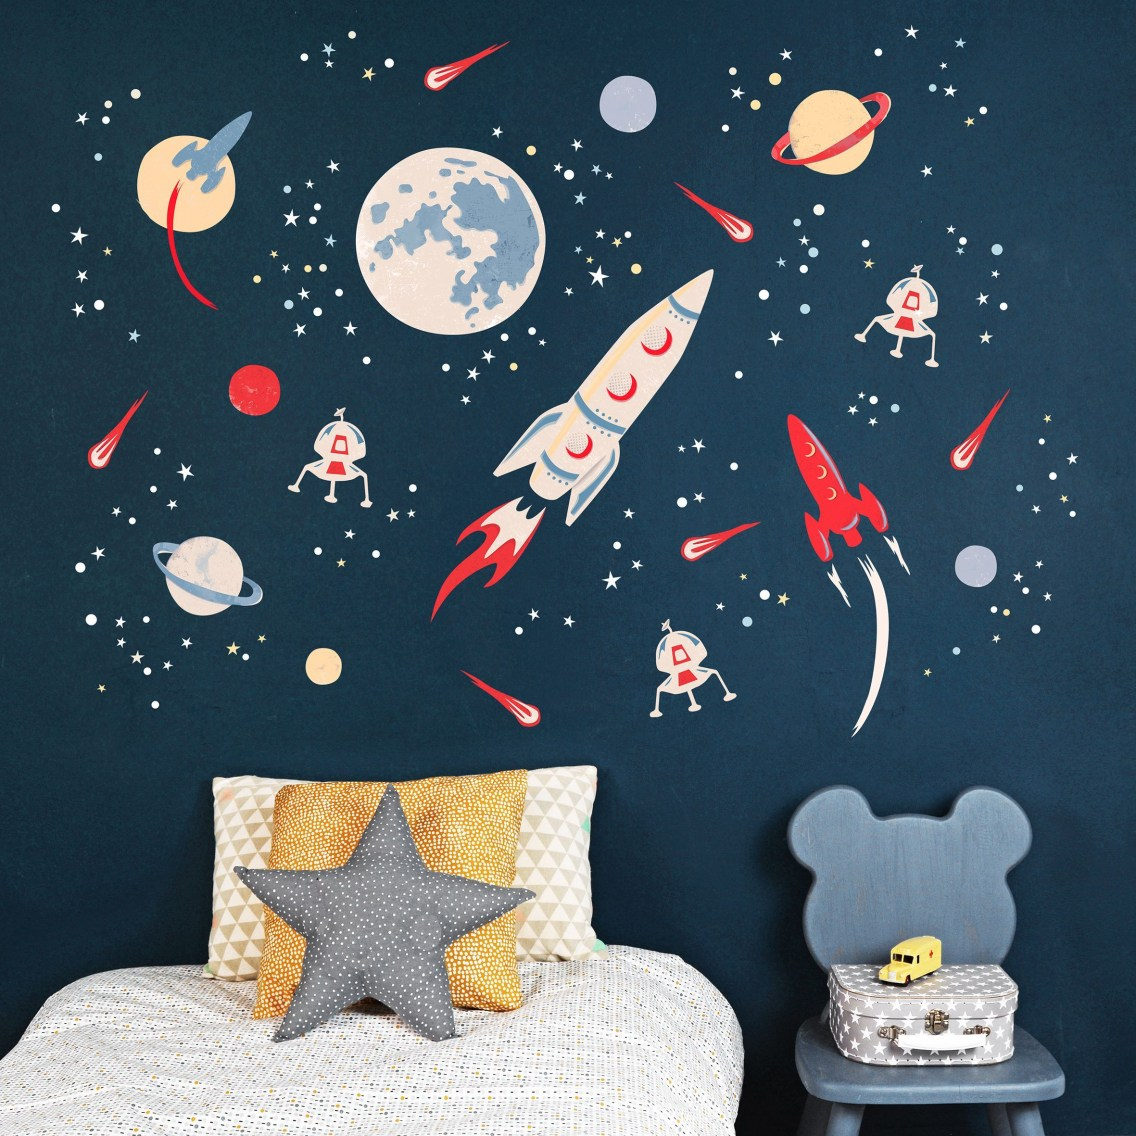 Awesome Kids Bedroom Wall Decorations Ideas That Will Make Fun Your Kids Room35